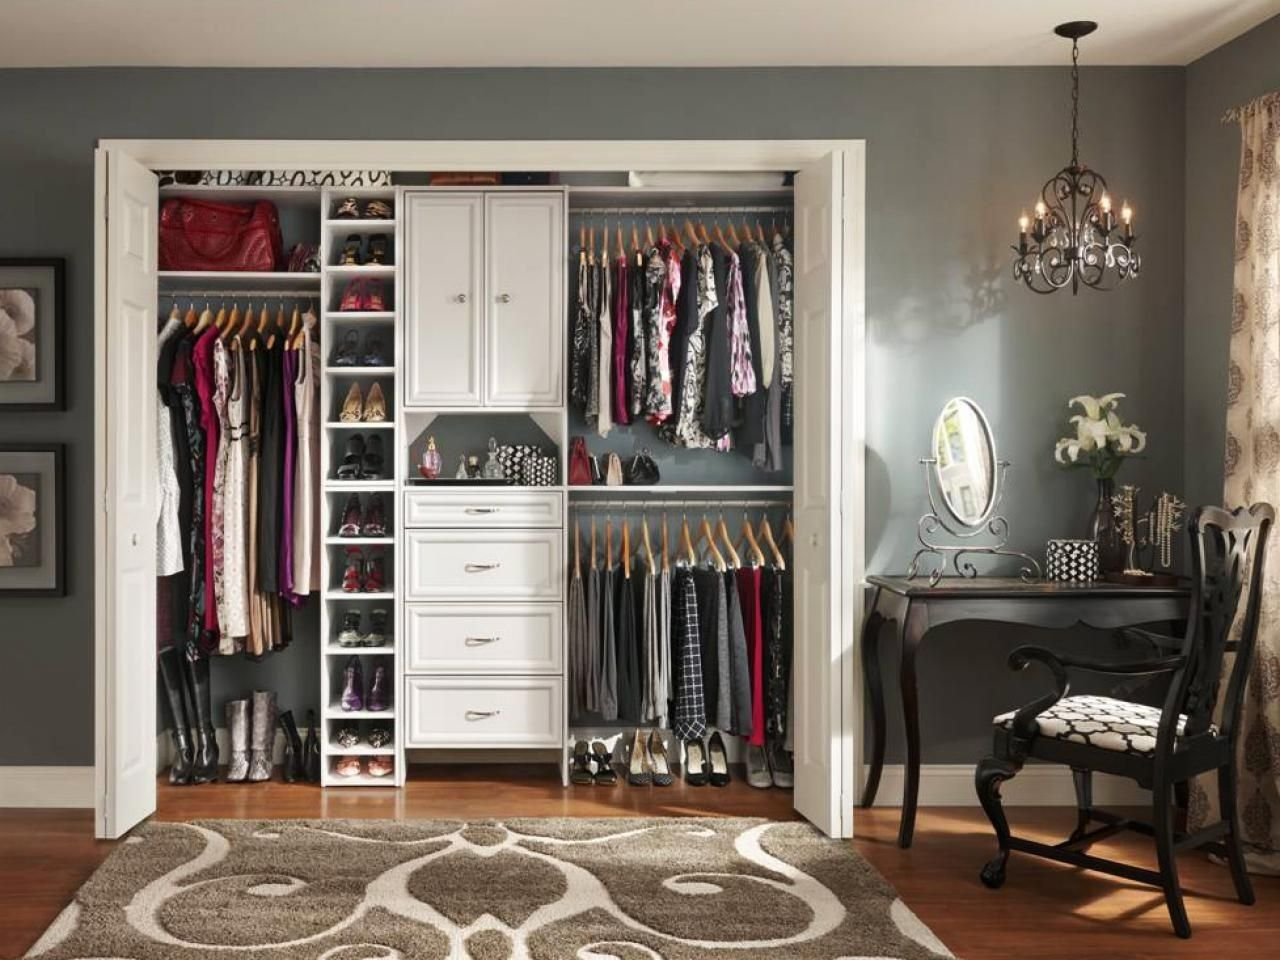 Space Saving Wardrobe Ideas 35 Awesome Space Saving Ideas For Small Bedroom Bathroom Ideas